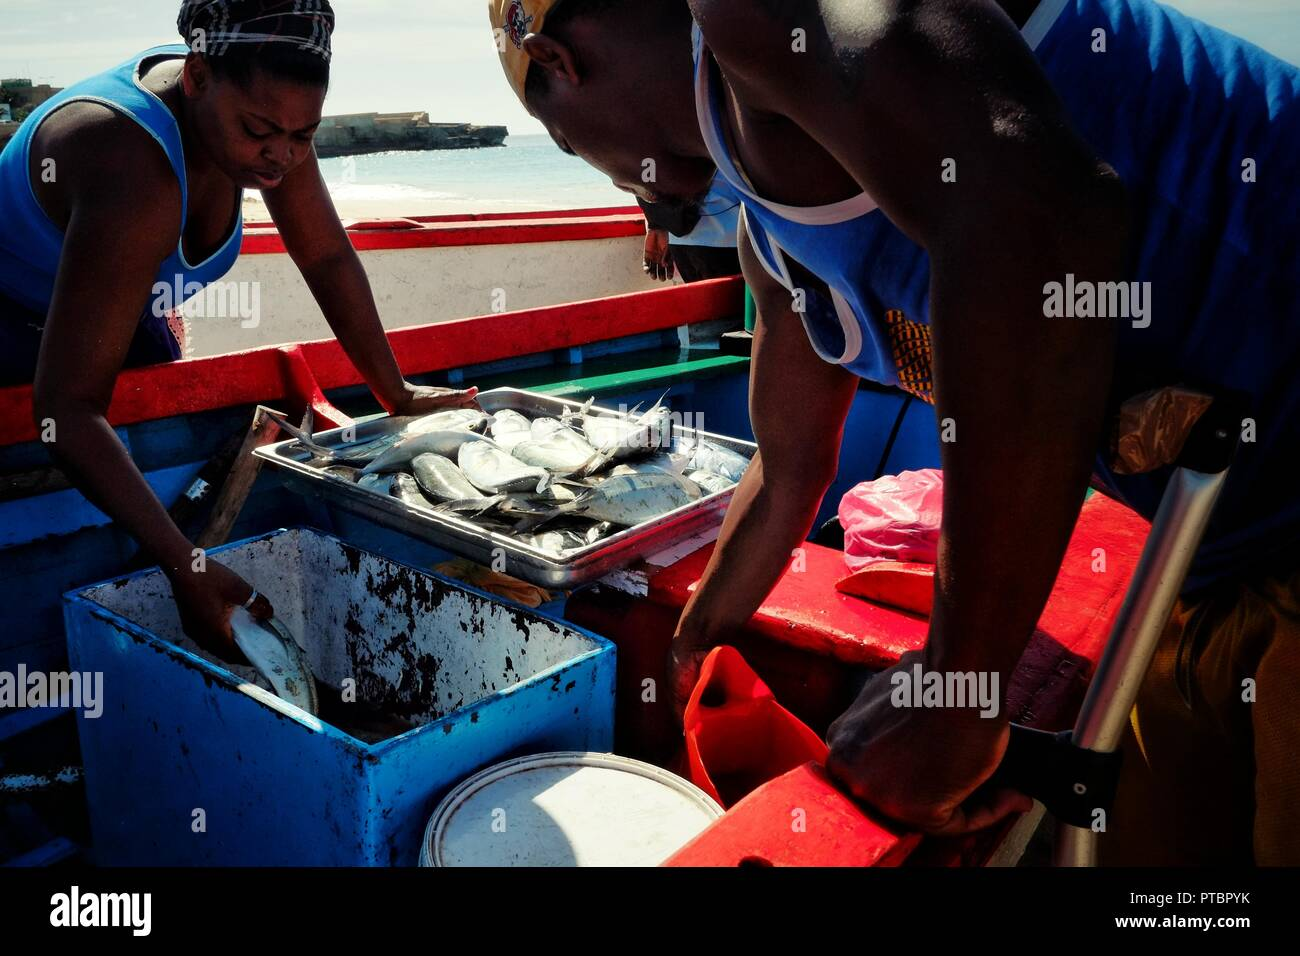 Vila do Maio ,Maio Island, Cape Verde - Jan 5 2016: local fisherman offloading his catch while the woman from the market is going forward to check his - Stock Image